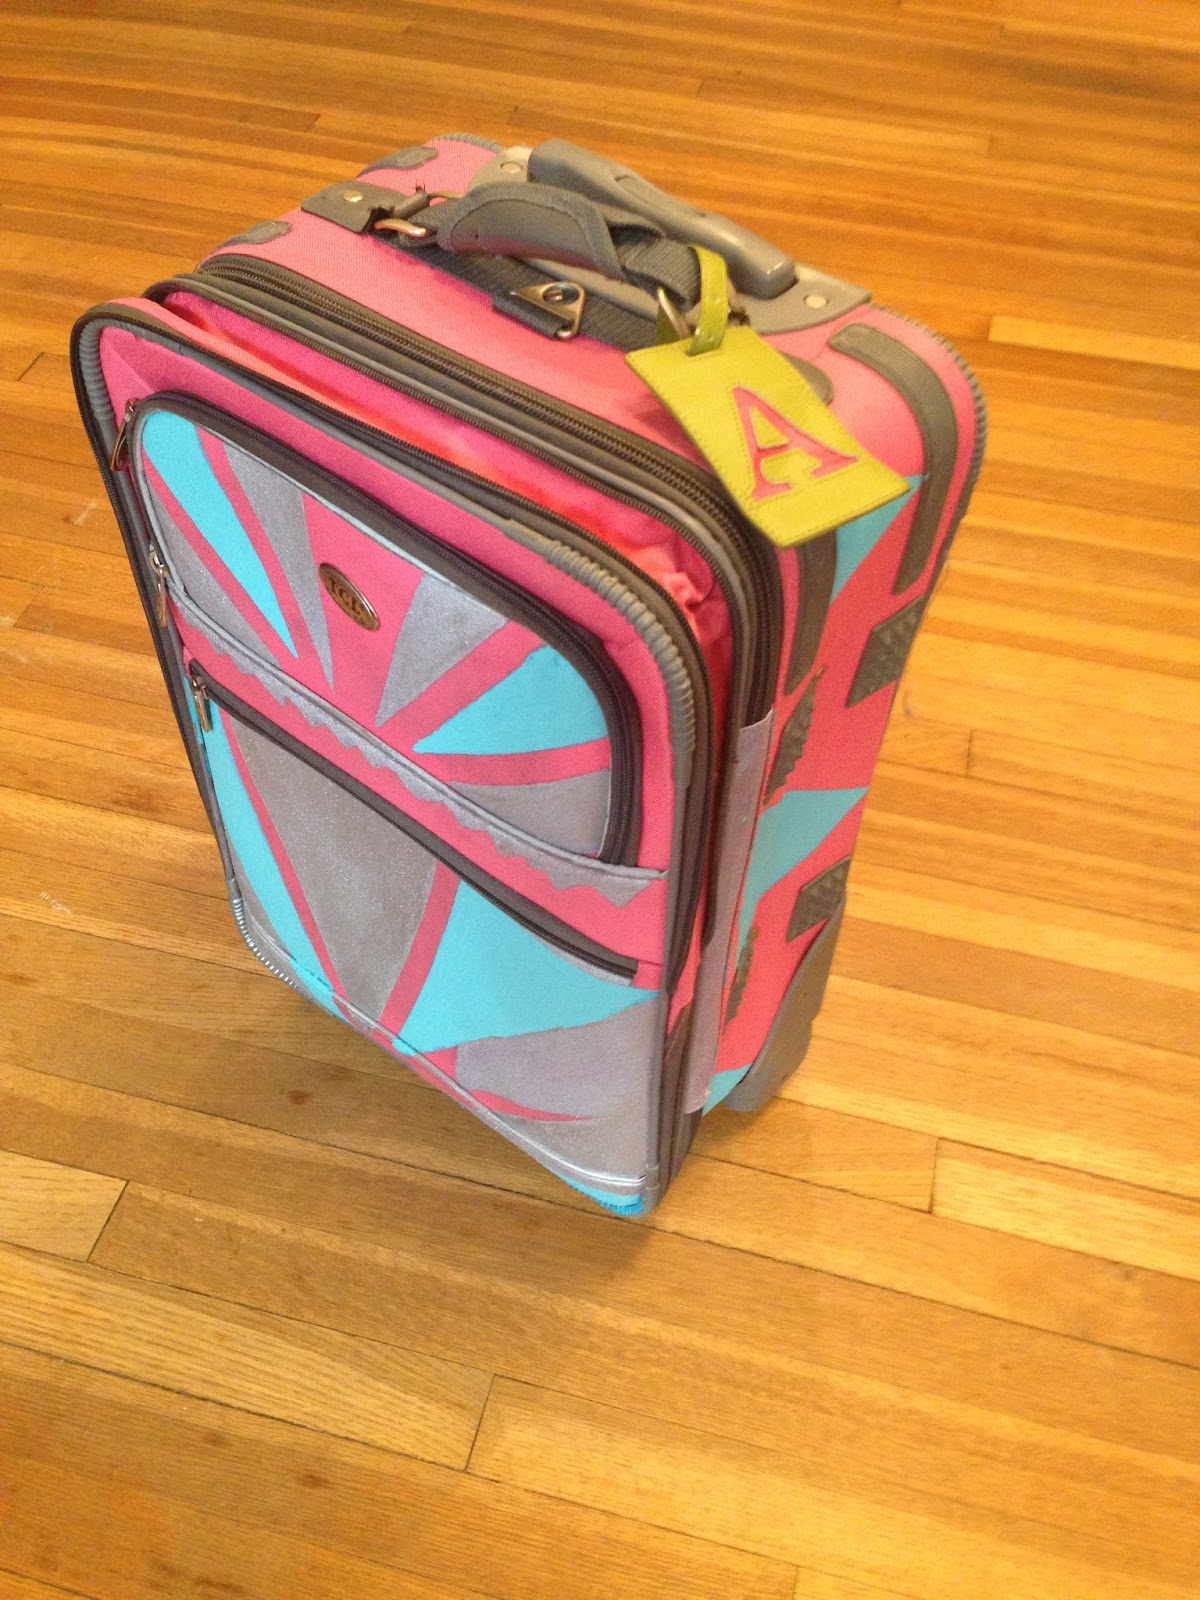 Painted Luggage Suitcase Craft DIY